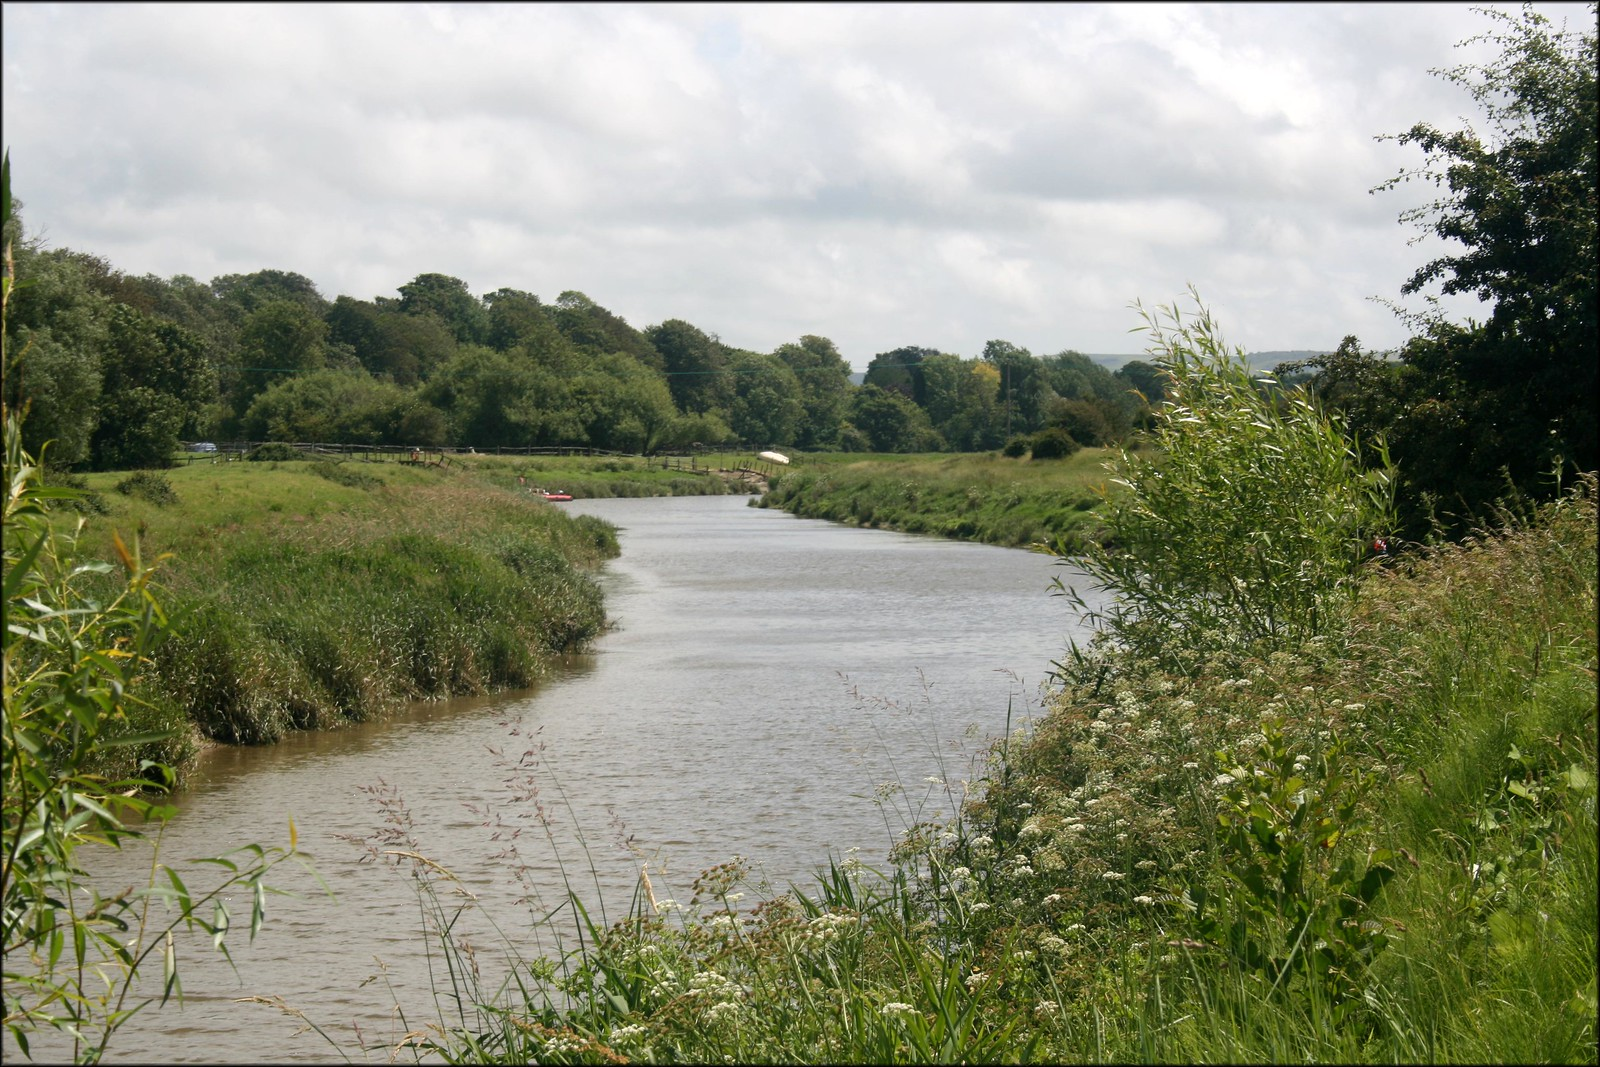 The River Ouse near Lewes